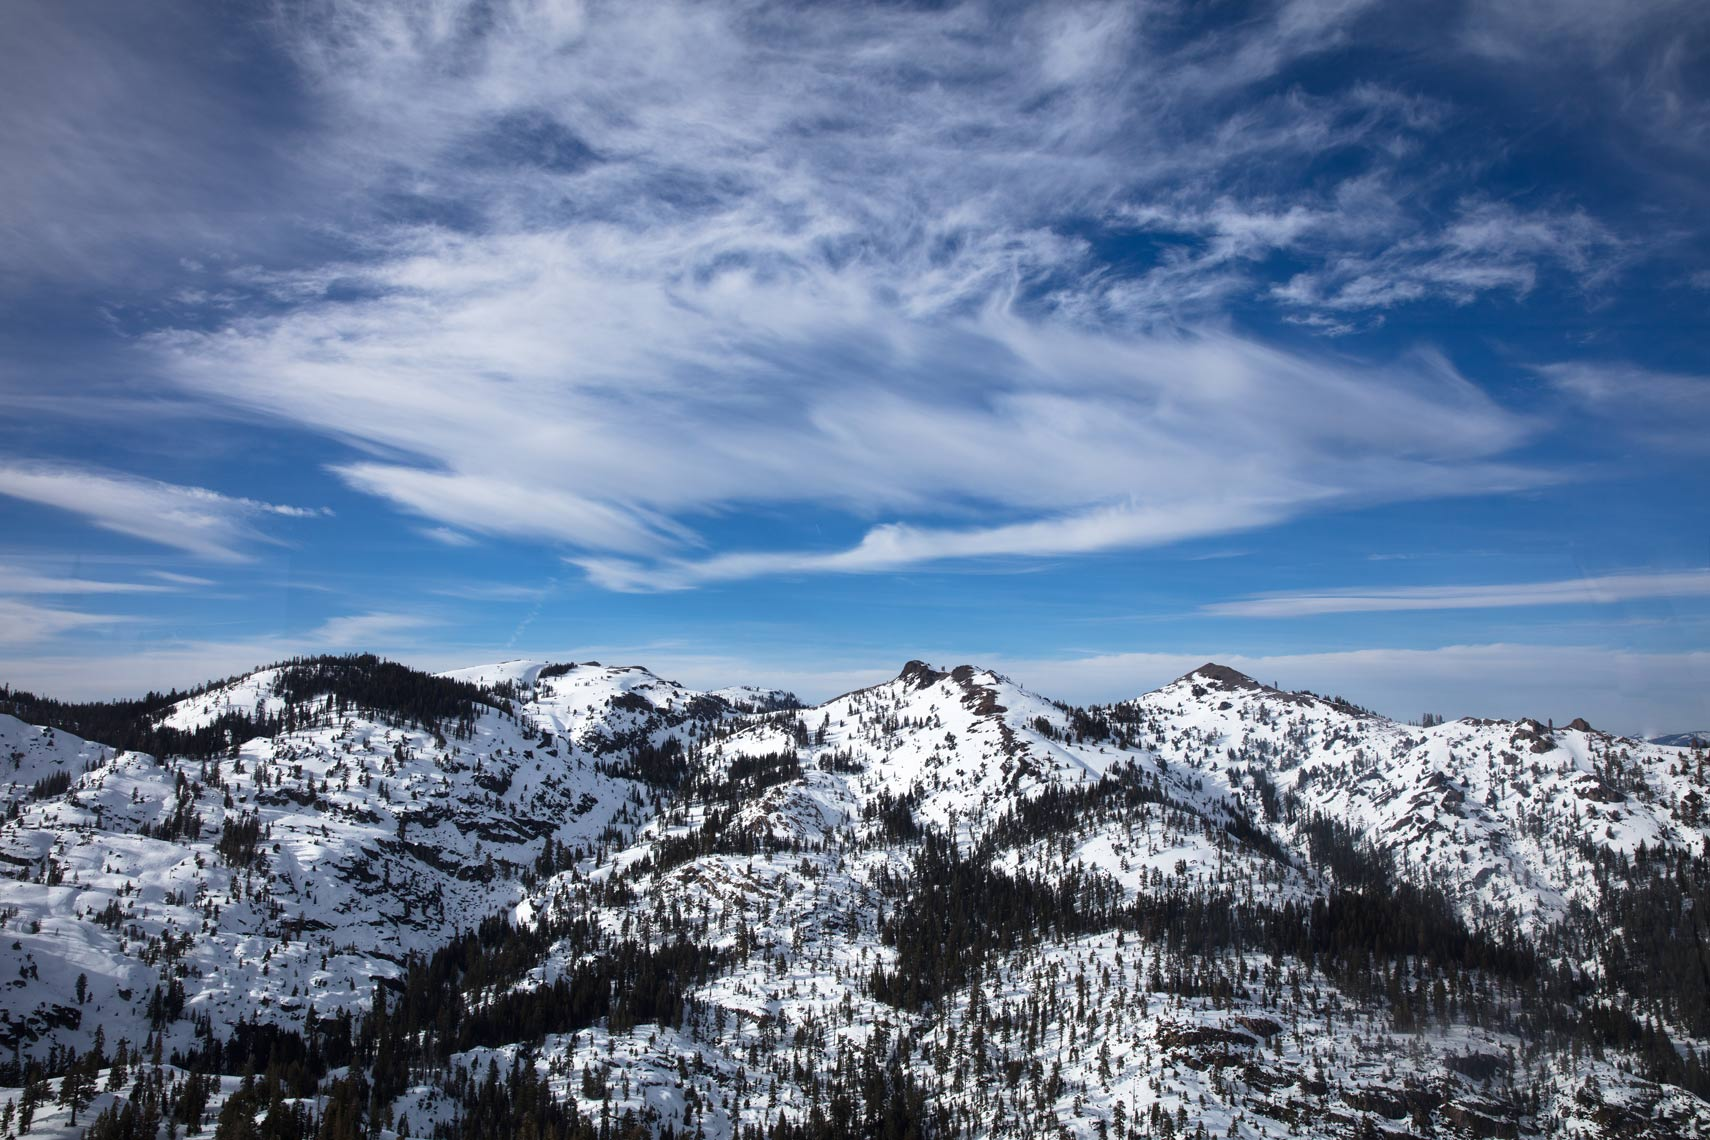 fg_squaw_valley_2018_03_30_88A8961